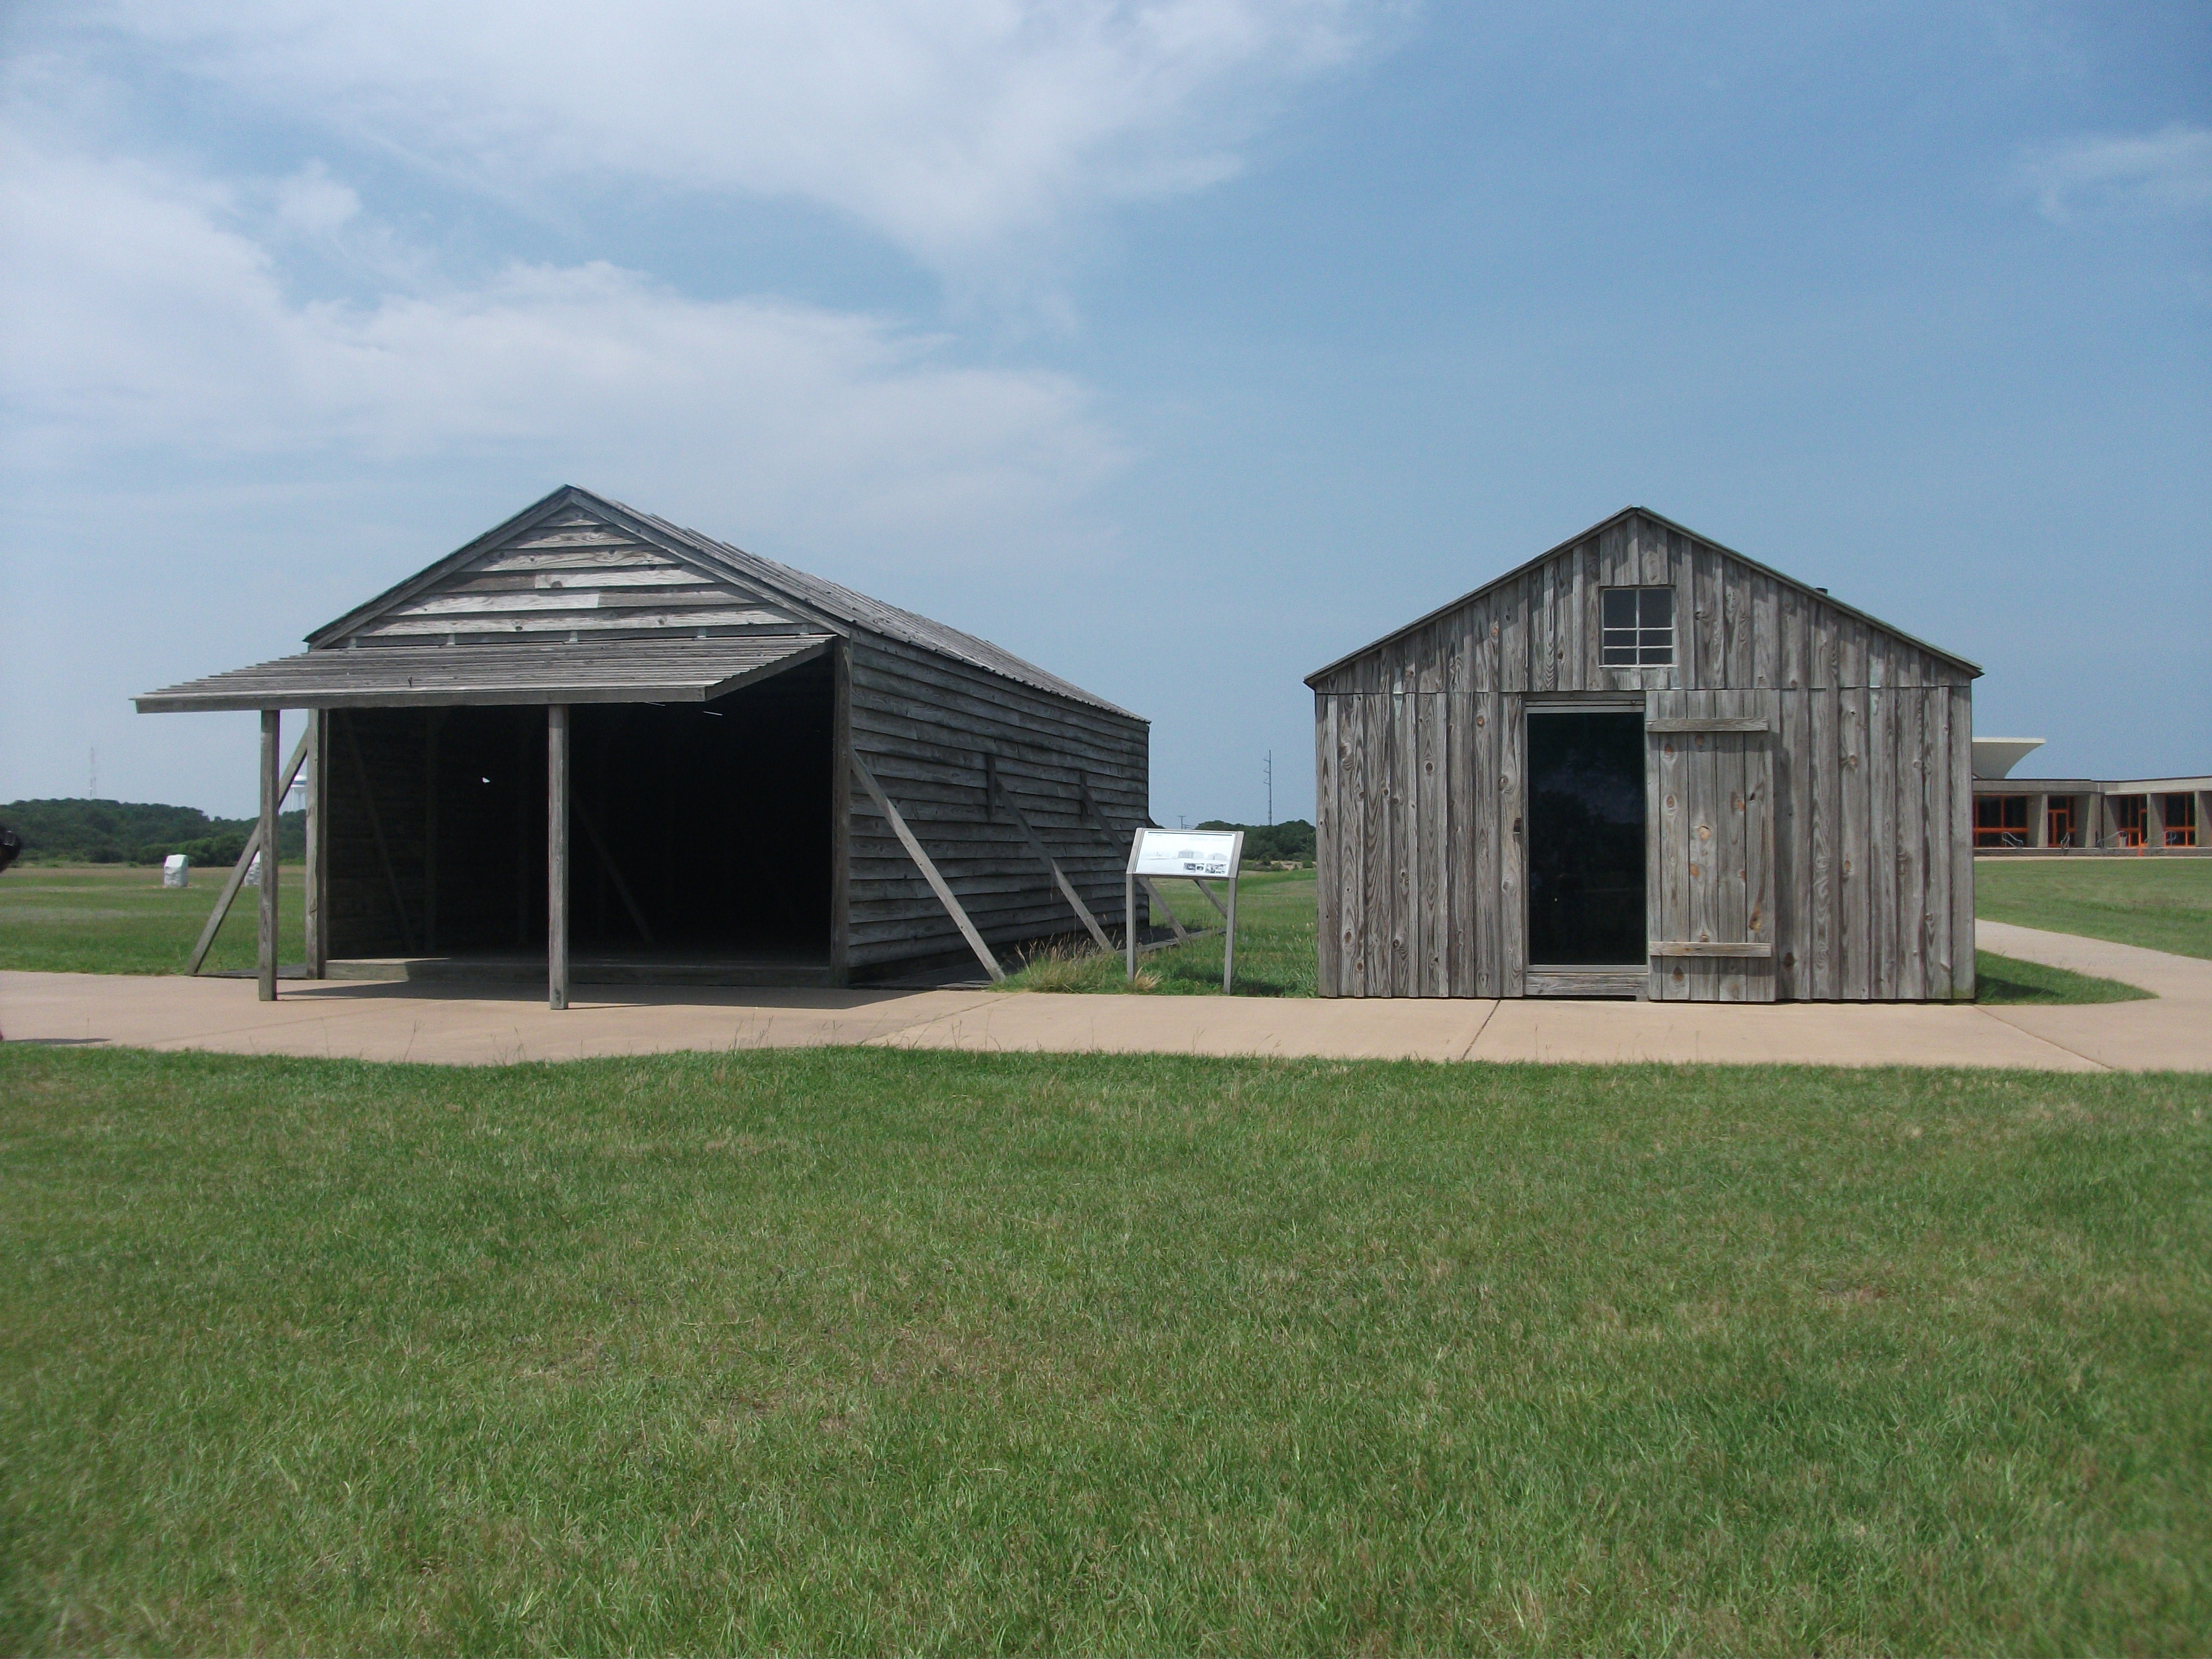 The Camp Marker and Replica Buildings